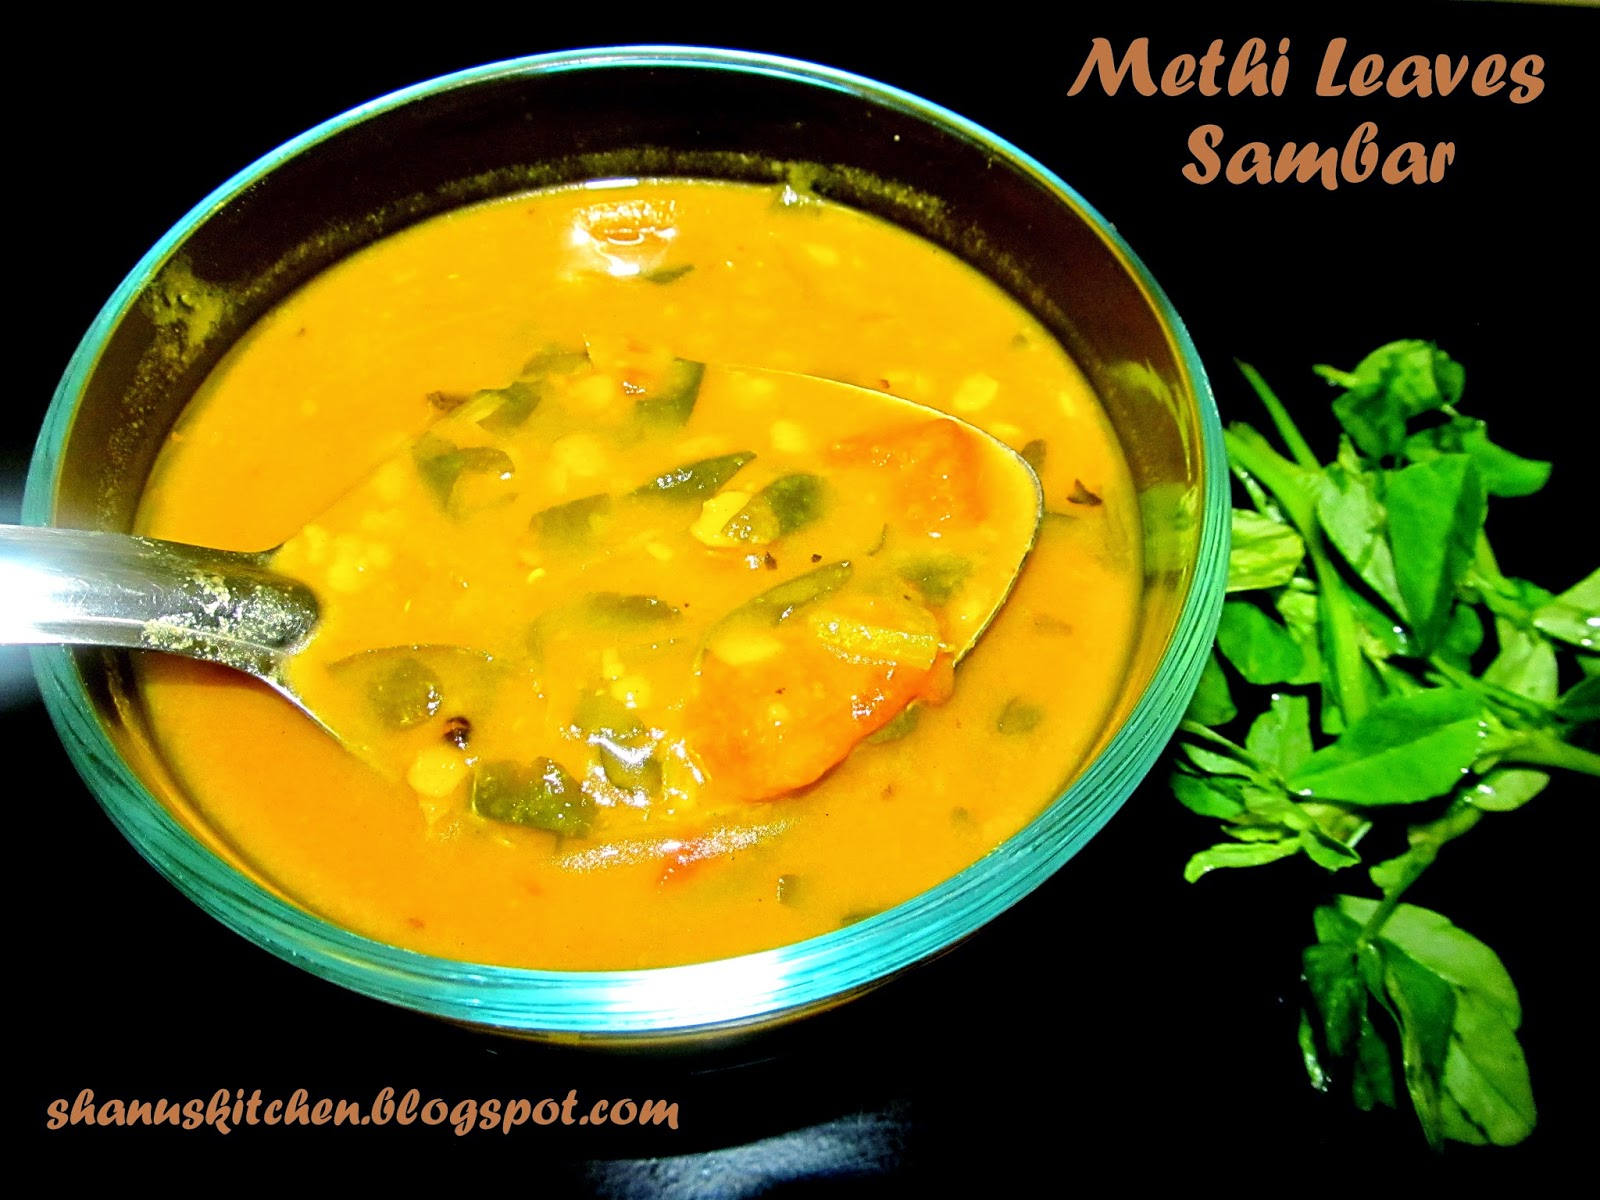 shanuskitchenMethi Leaves Sambar